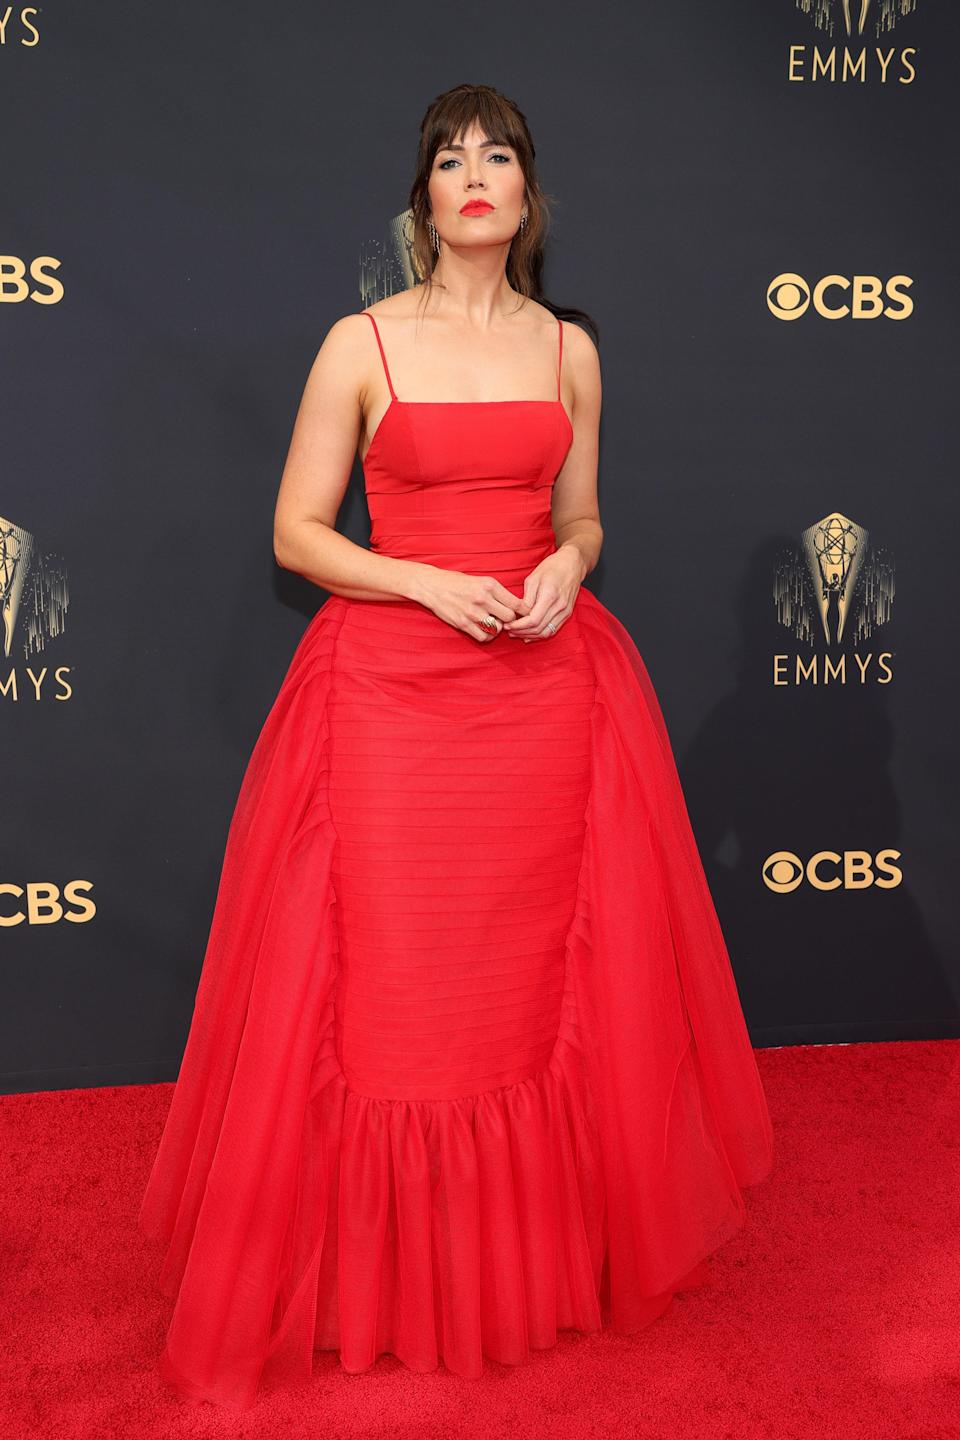 Mandy Moore went for a full ballgown with her crimson red Carolina Herrera.